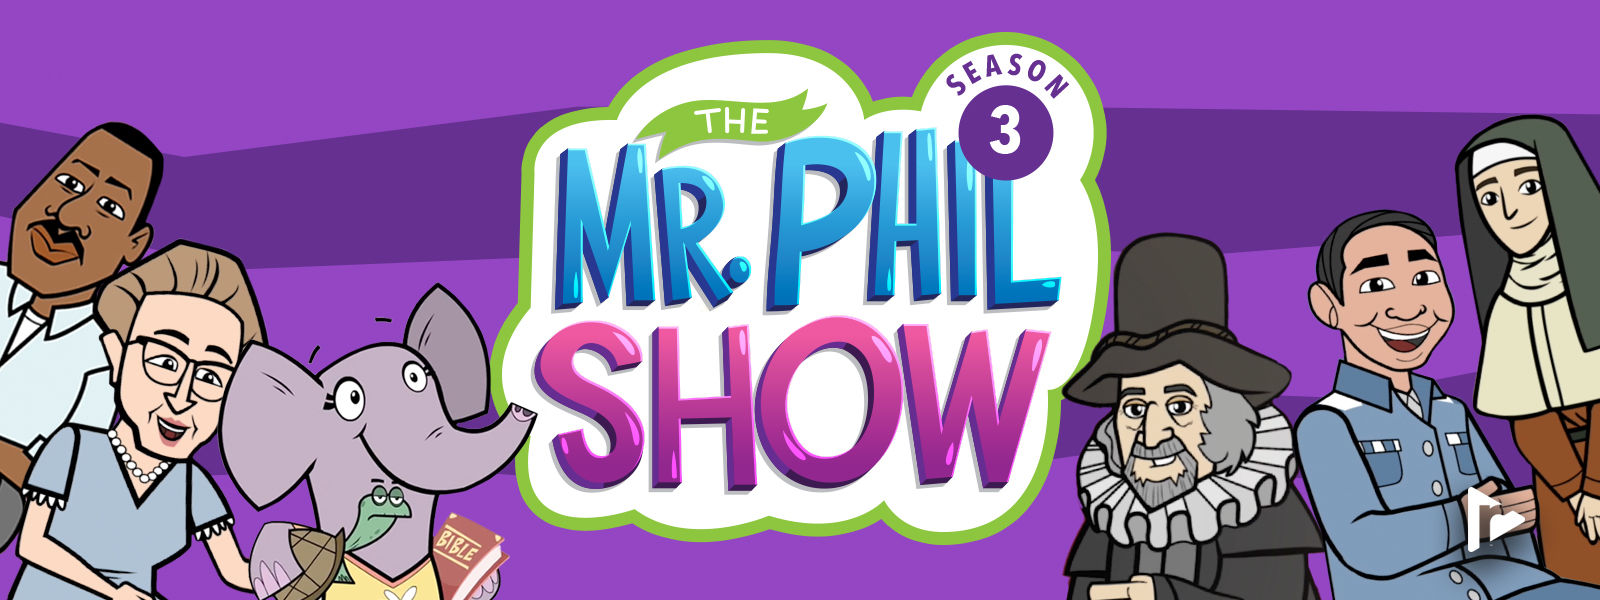 The Mr. Phil Show - Season 3